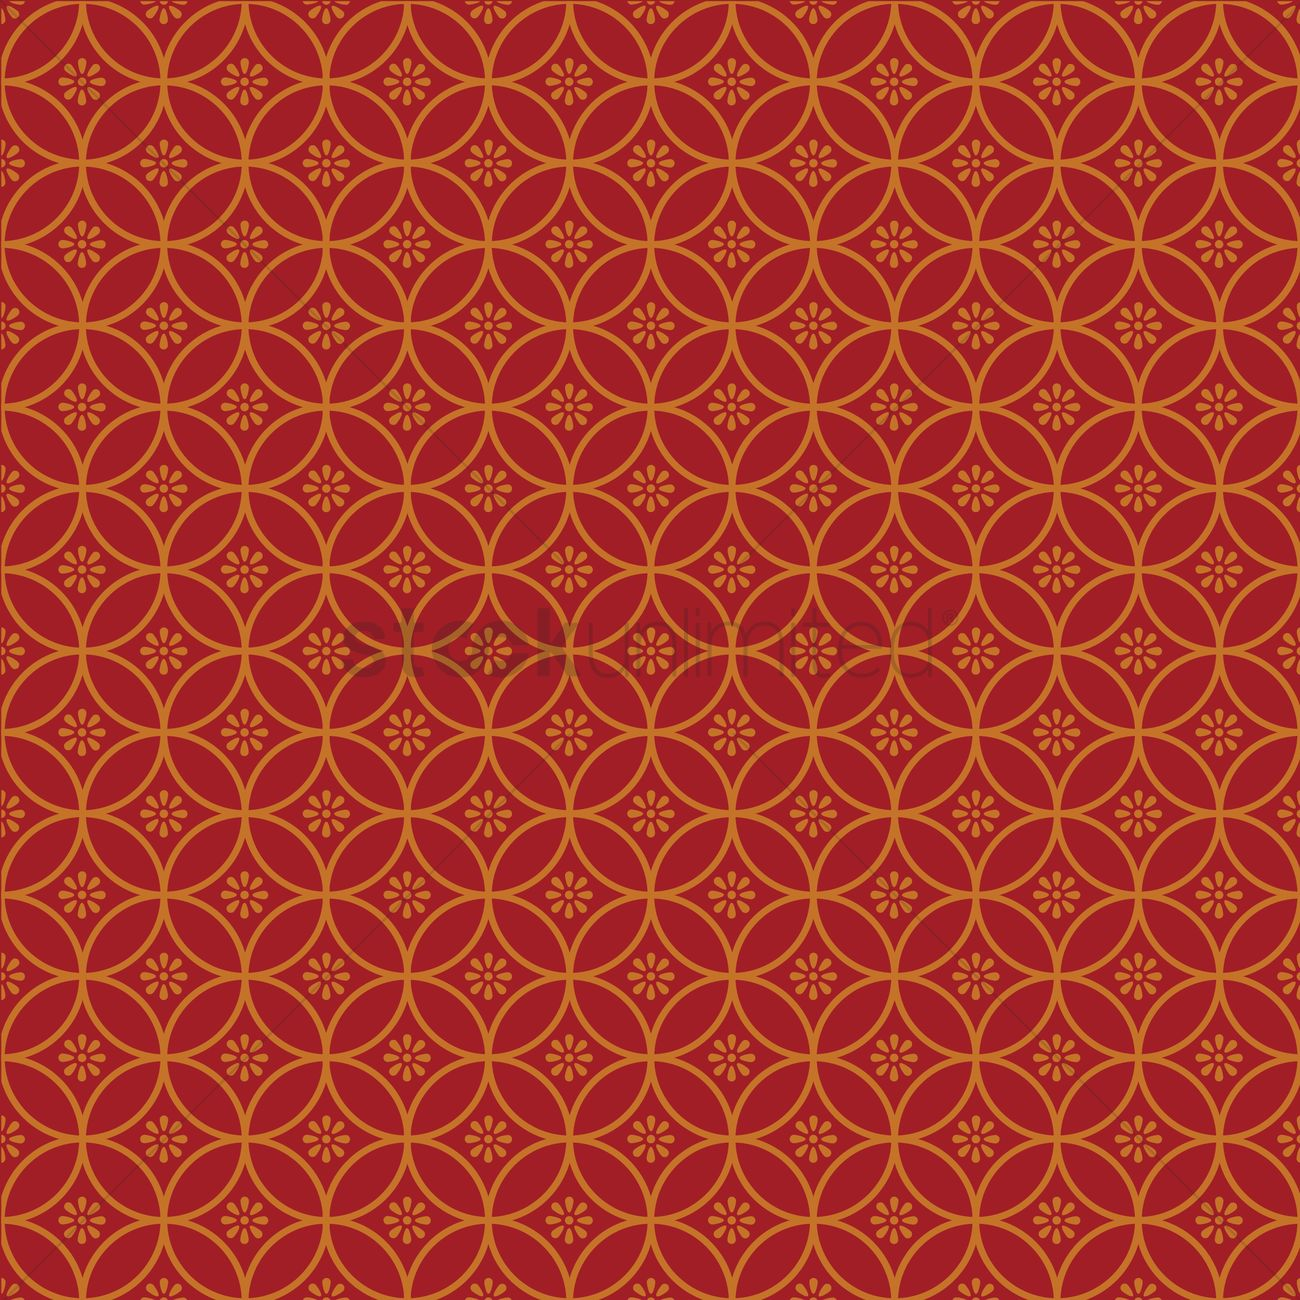 Chinese pattern background Vector Image - 1577044 ... | 1300 x 1300 jpeg 328kB